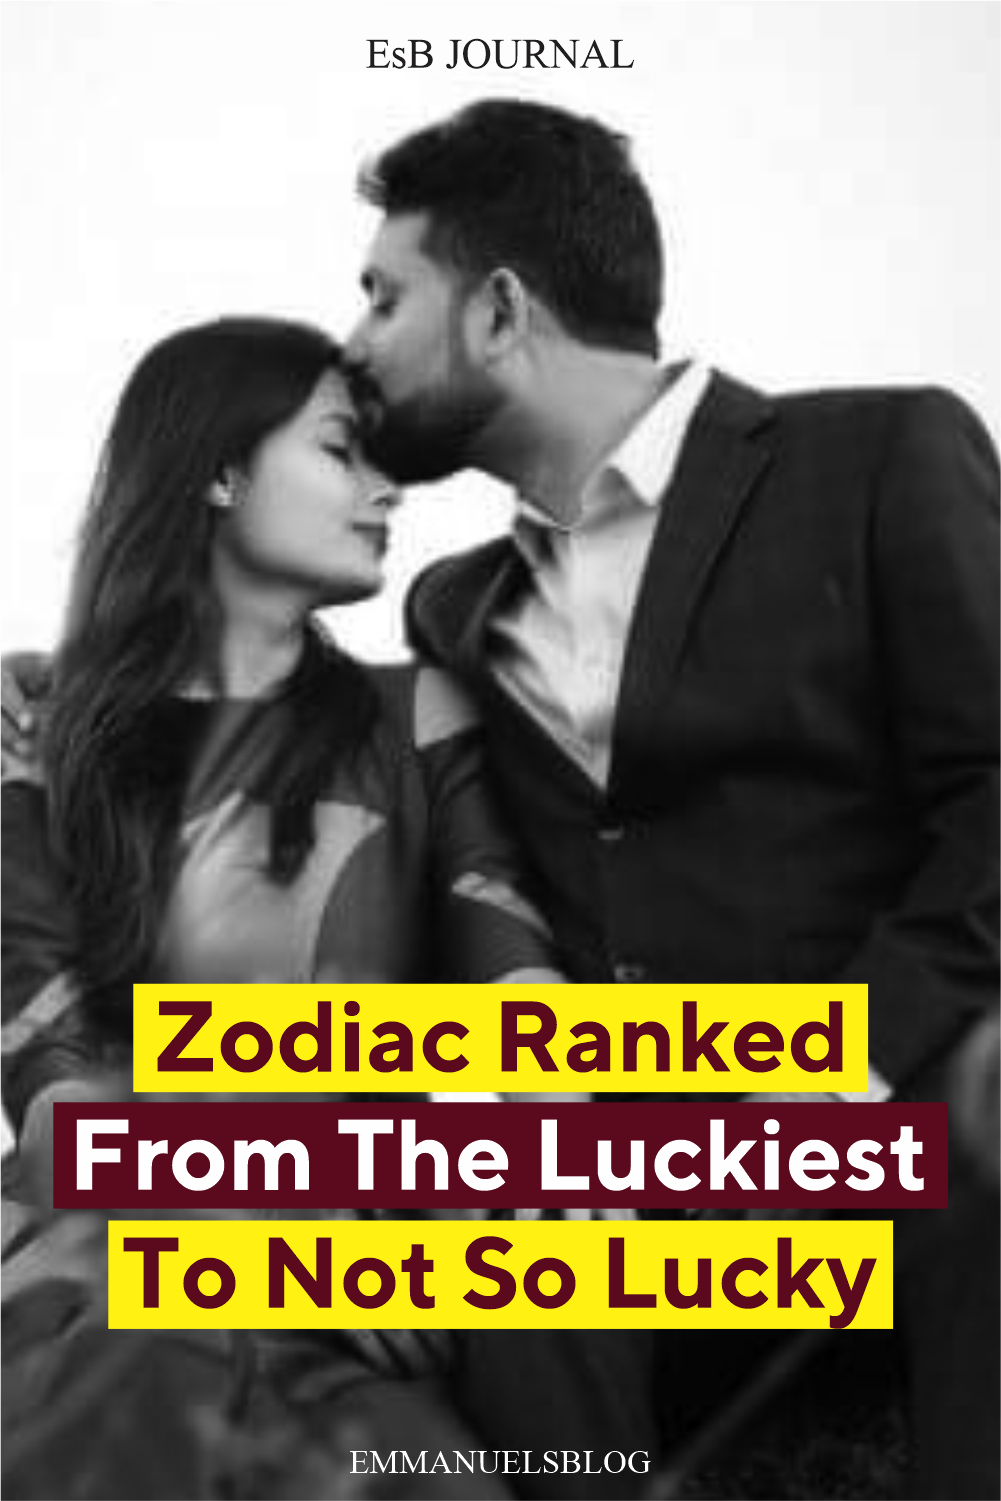 Zodiac Ranked From The Luckiest To Not So Lucky